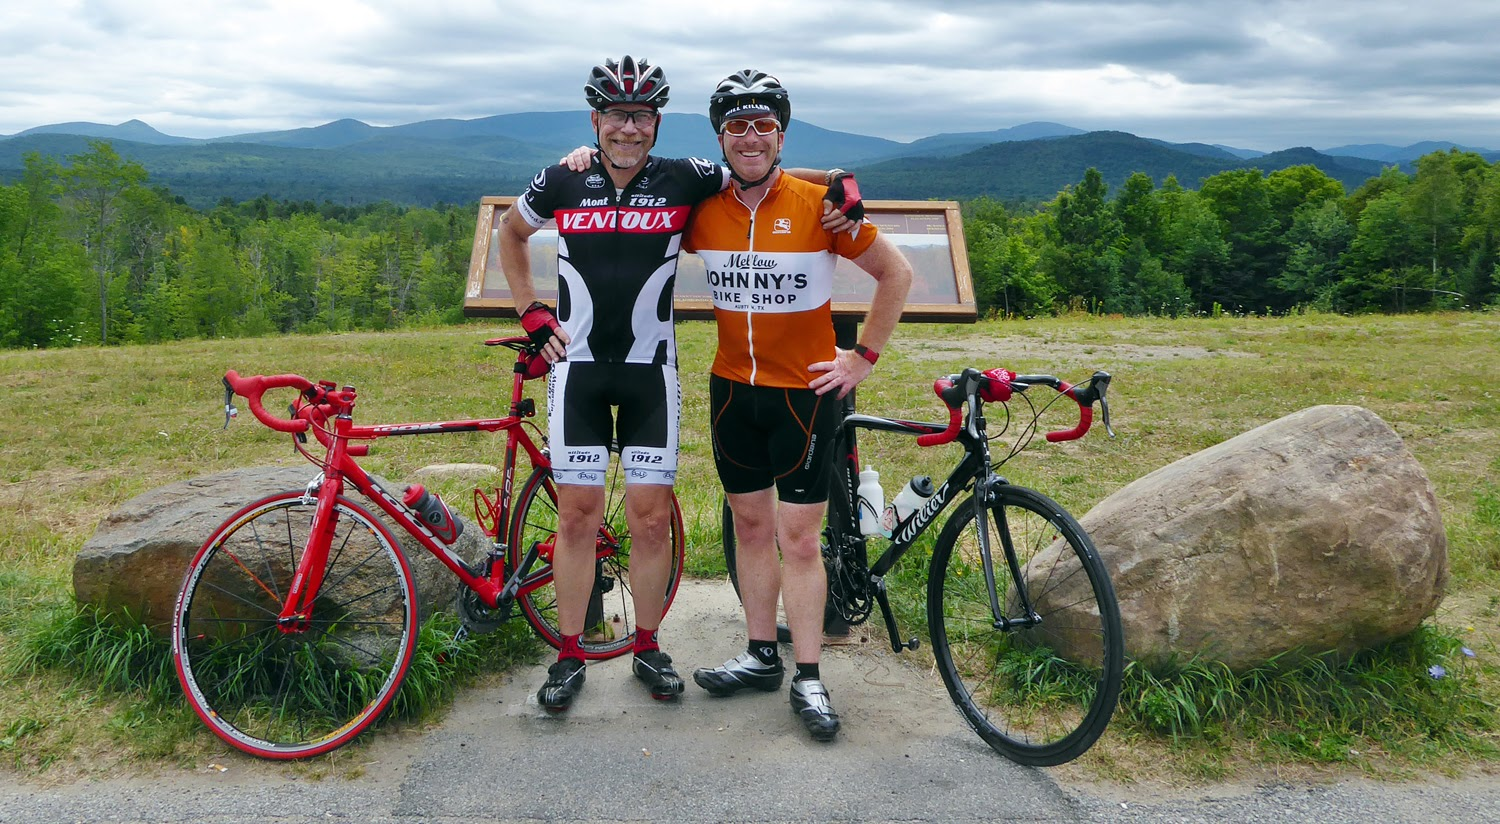 With the peaks in the background, friends Dave Kraus, let, and Evan Mayfield pose for a shot at the scenic overlook on Route 30 just south of the village of Indian Lake. Copyright by Dave Kraus/ Krausgrafik.com